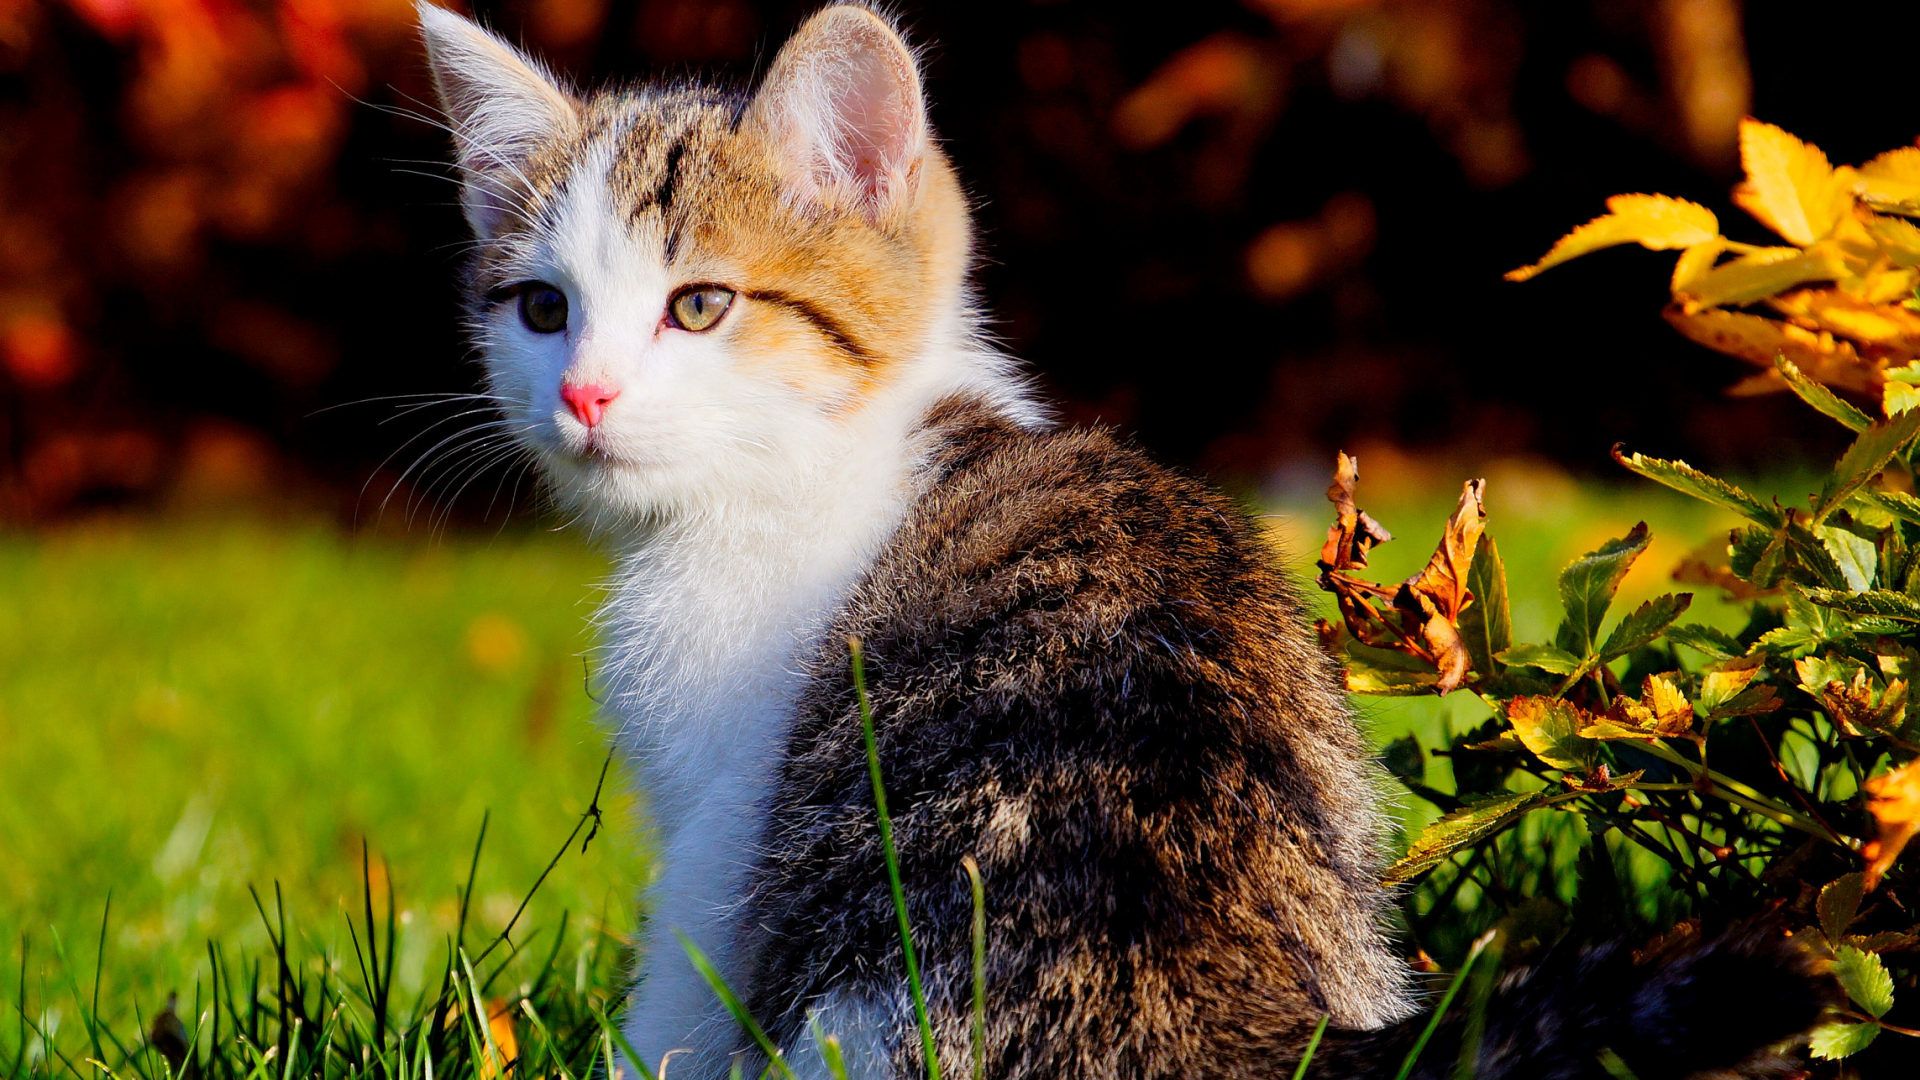 Free Download Cute Cats Beautiful Wallpapers Hd Wallpaper 2286x1377 For Your Desktop Mobile Tablet Explore 49 Cute Cats Wallpapers Free Download Cute Cat Wallpapers Cute Kittens Wallpapers For Desktops